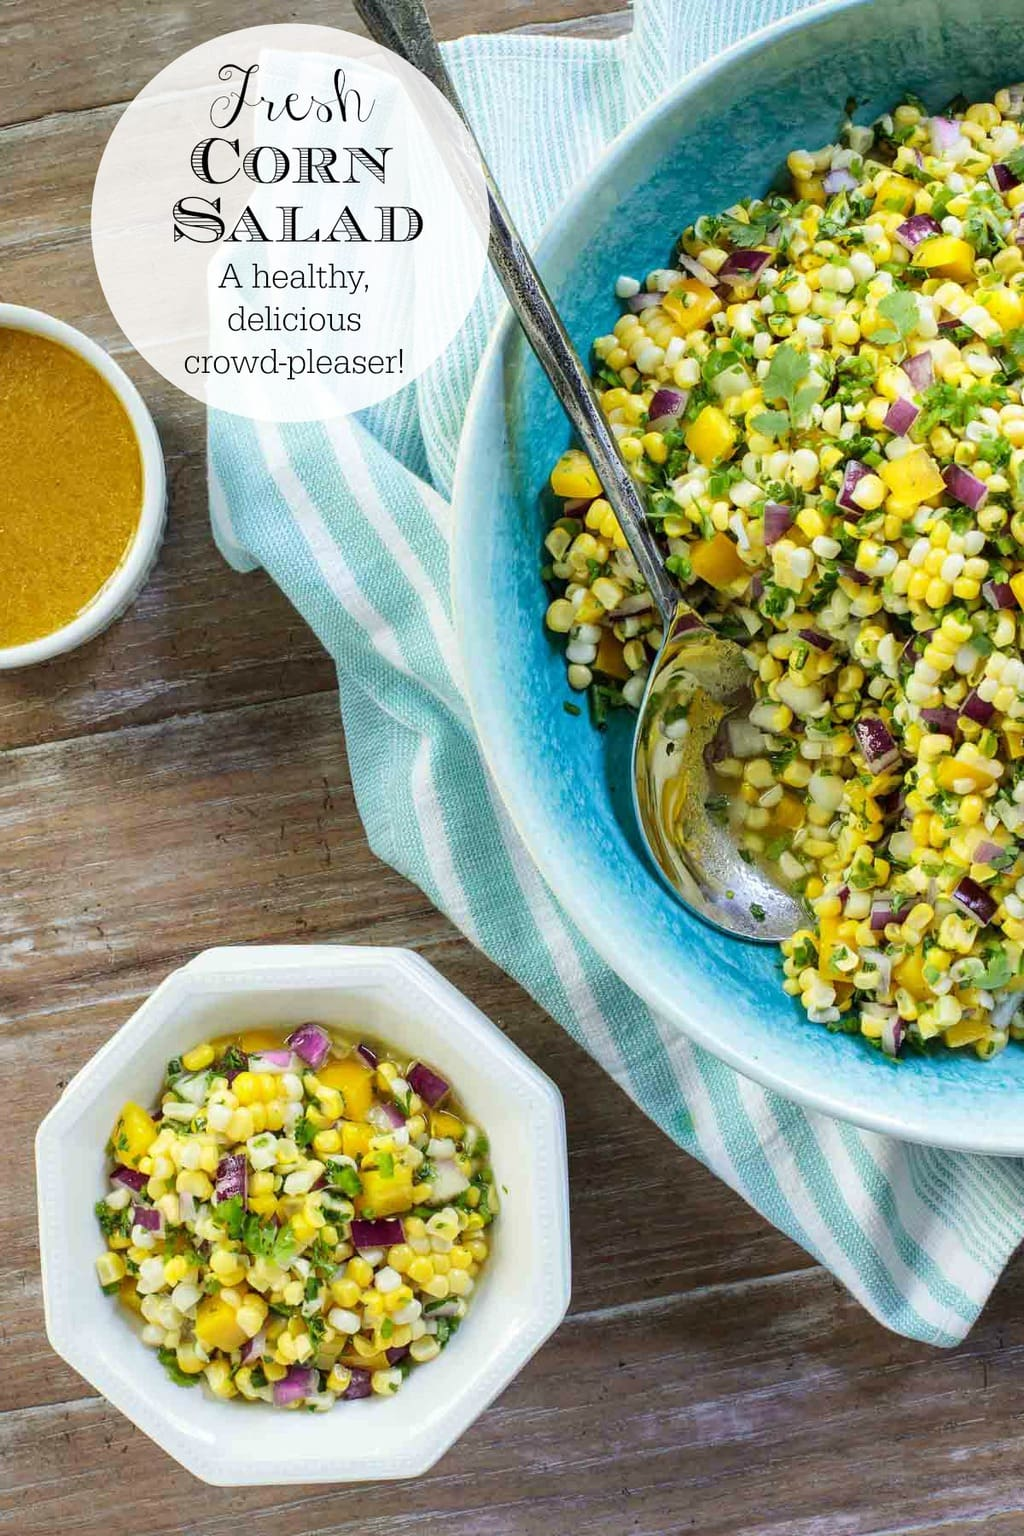 Delicious, healthy and make-ahead, this Fresh Corn Salad is perfect for picnics, parties and potlucks. Leftovers are wonderful for lunchand dinner salads. #cornsalad, #summersalad, #freshcorn, #picnicsalad, #makeaheadsalad